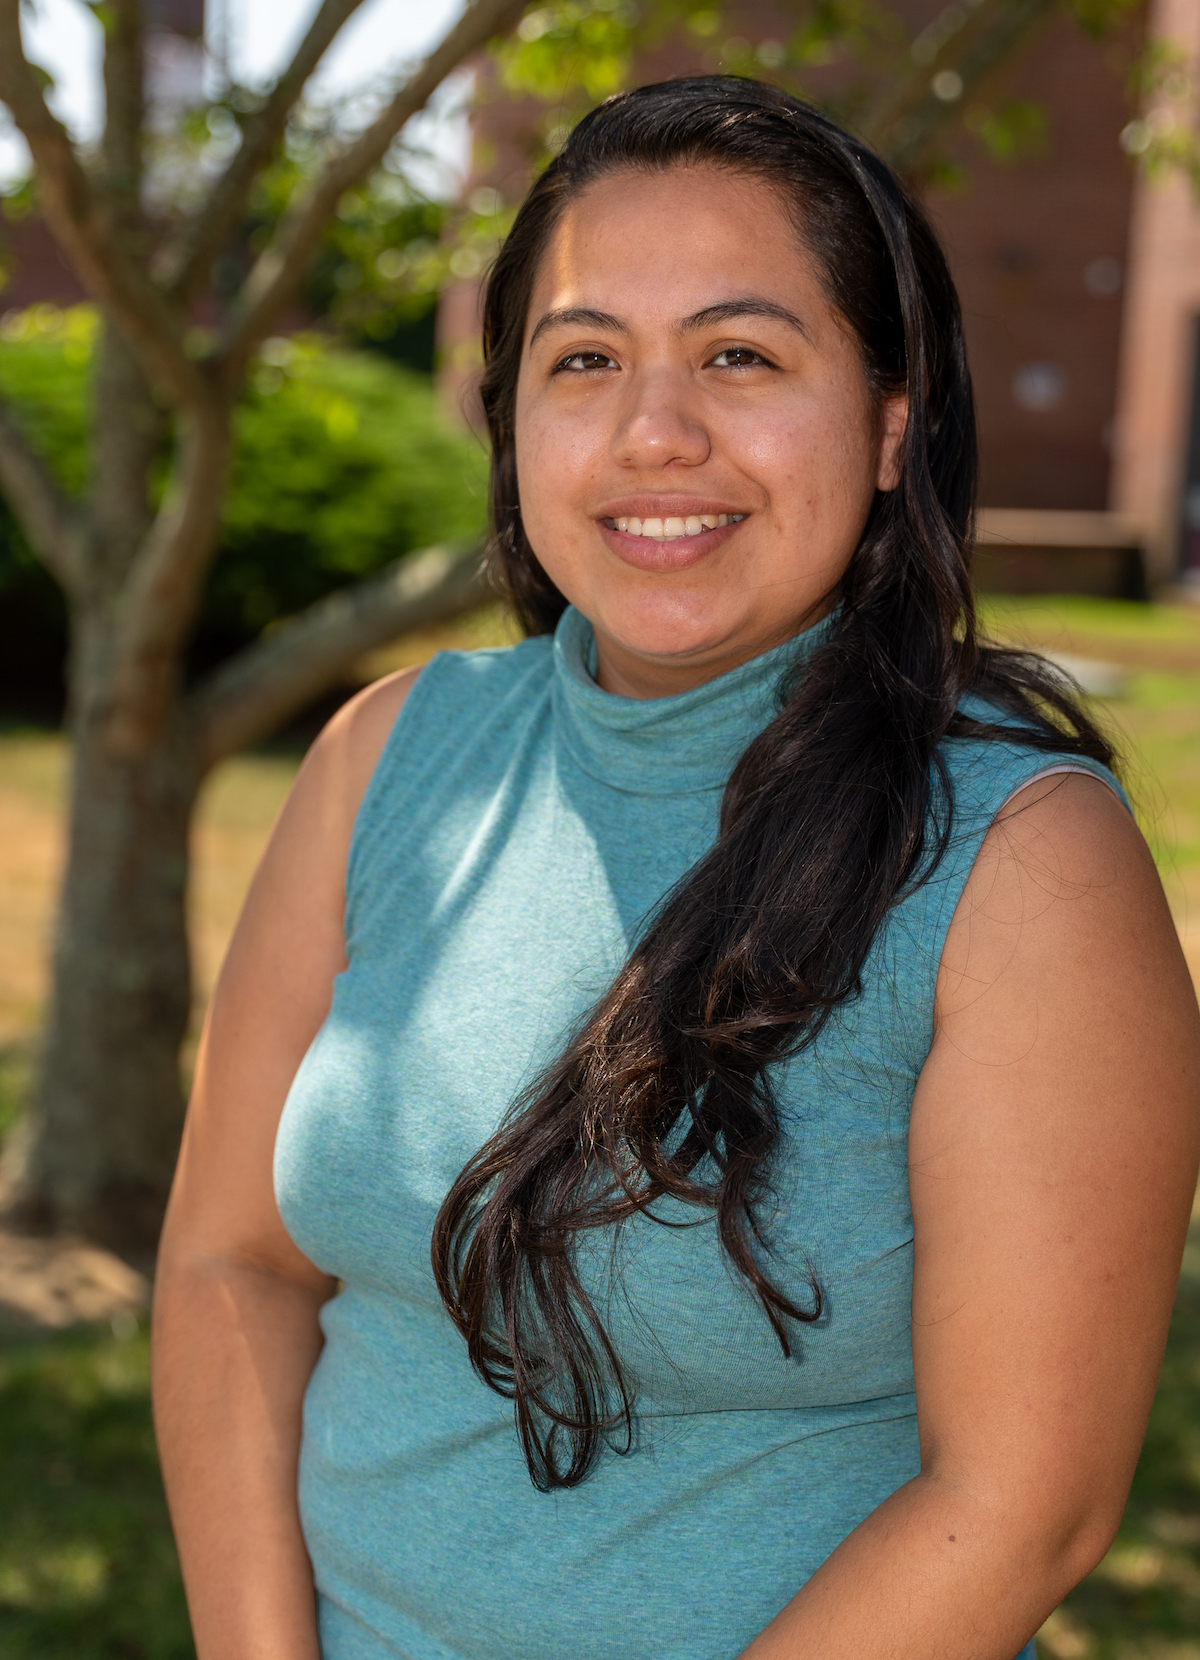 Helen Lopez has been named the new registrar for the Southampton School District.